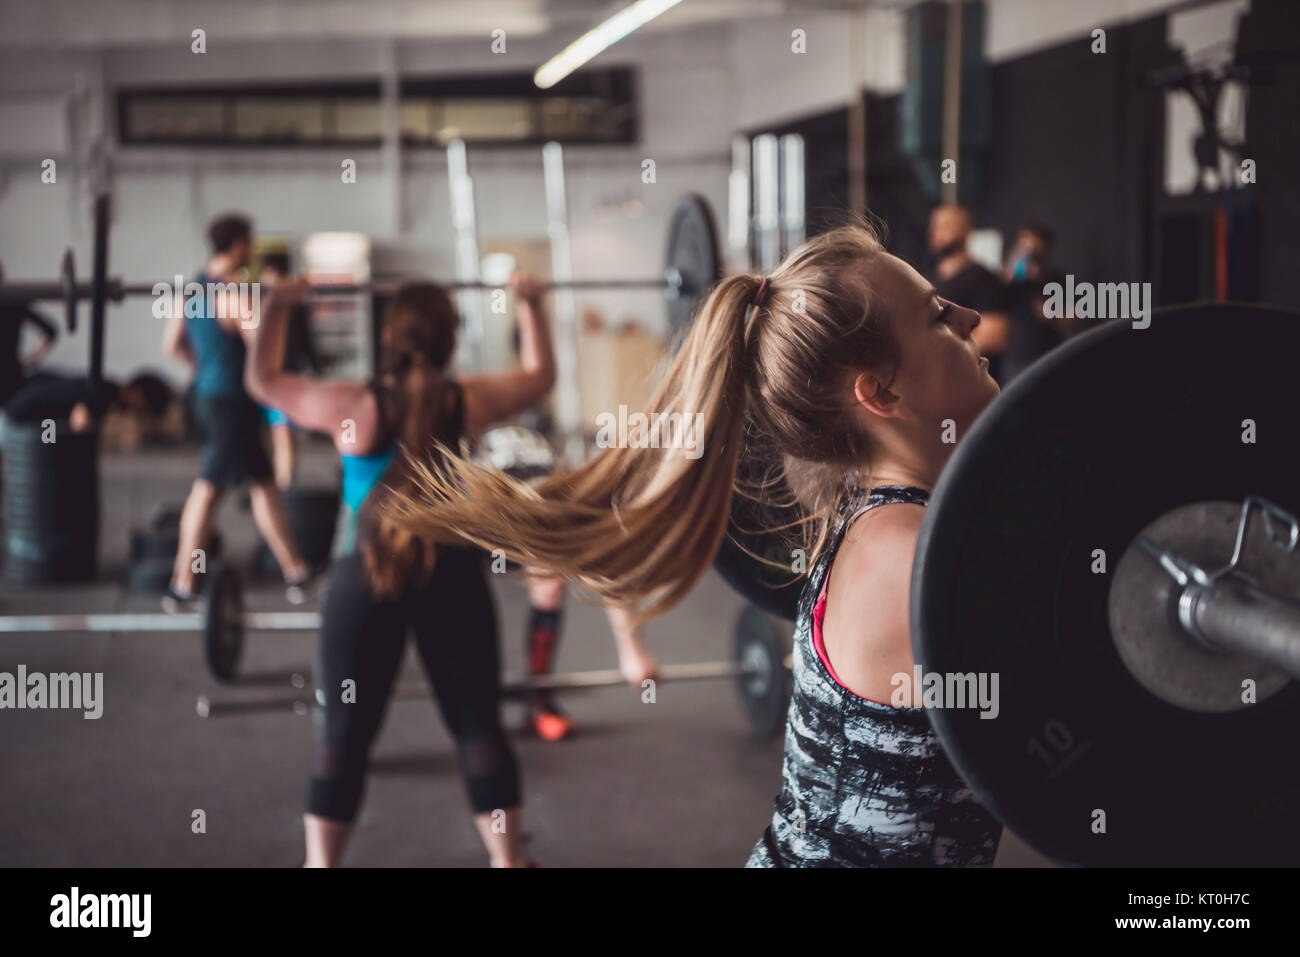 Women and fitness training. Weightlifting, working out and cross training. - Stock Image